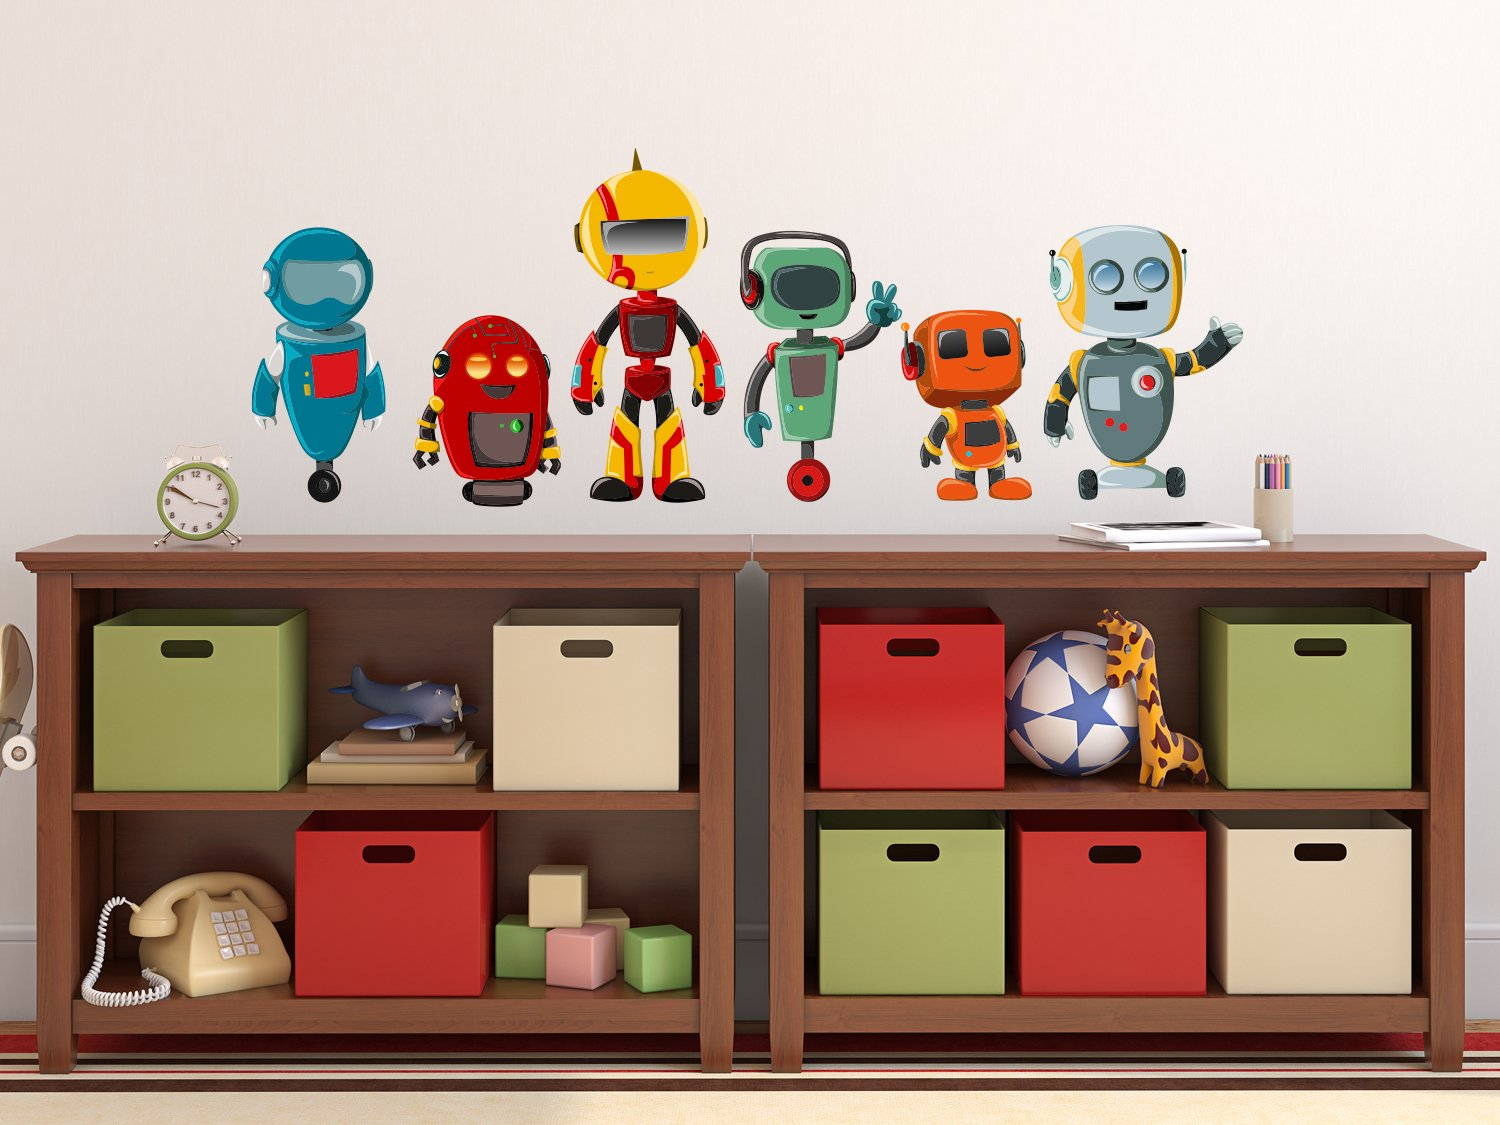 Sunny Decals Robot Fabric Wall Decals (Set of 6), Large